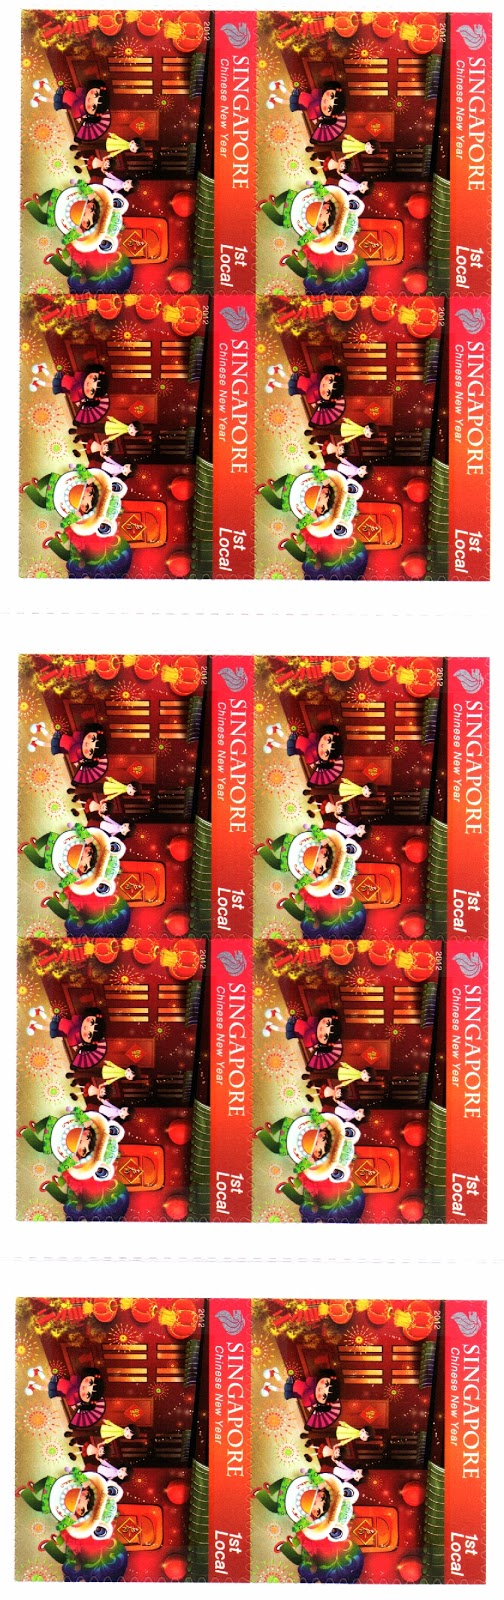 Self-adhesive Stamp Booklet S$2.55 - Chinese New Year